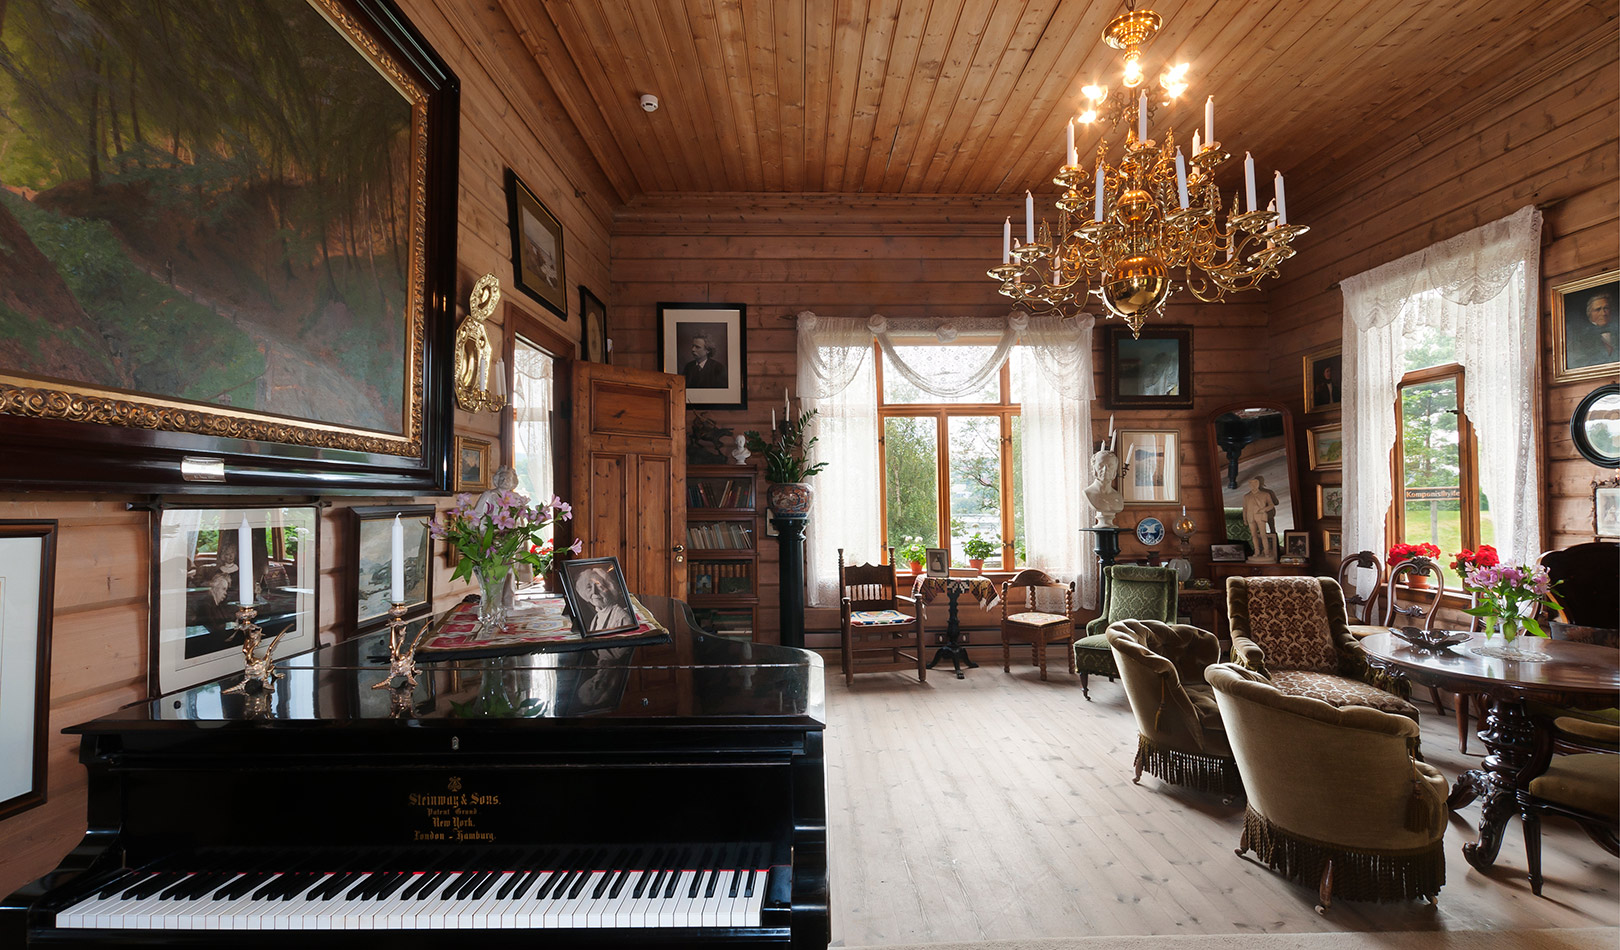 Interior at Troldhaugen, the home of the composer Edvard Grieg.